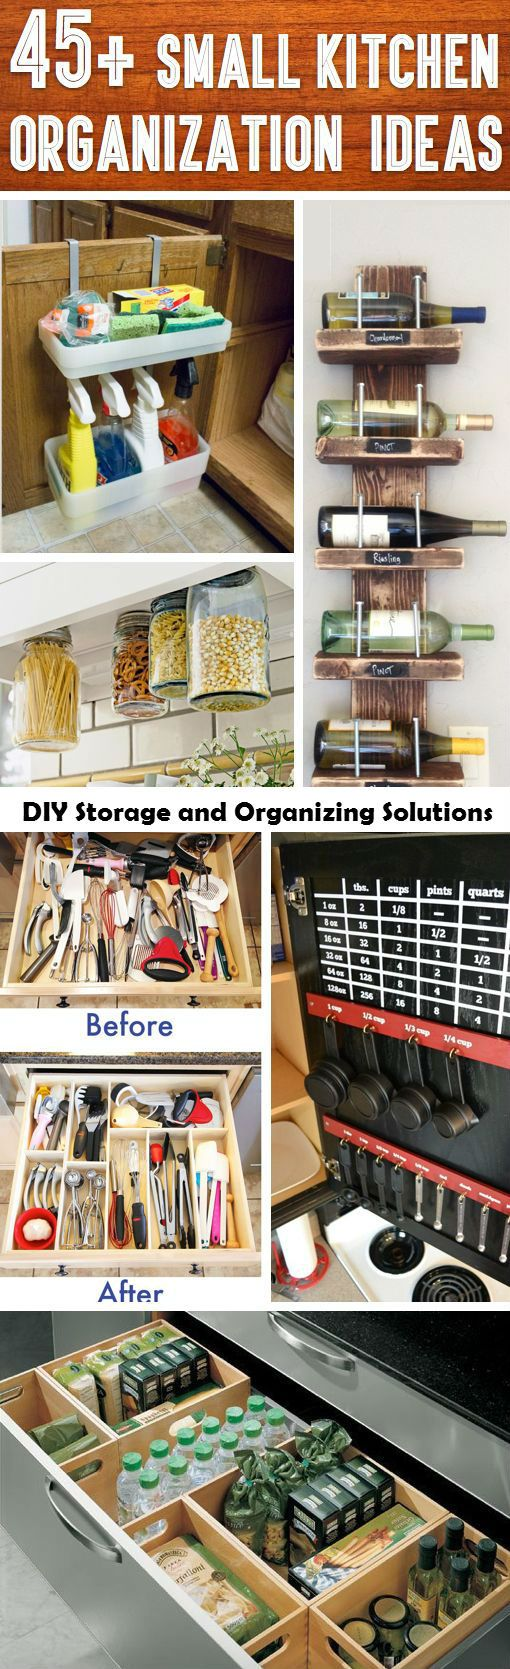 45 Kitchen DIY Organization And Storage Ideas